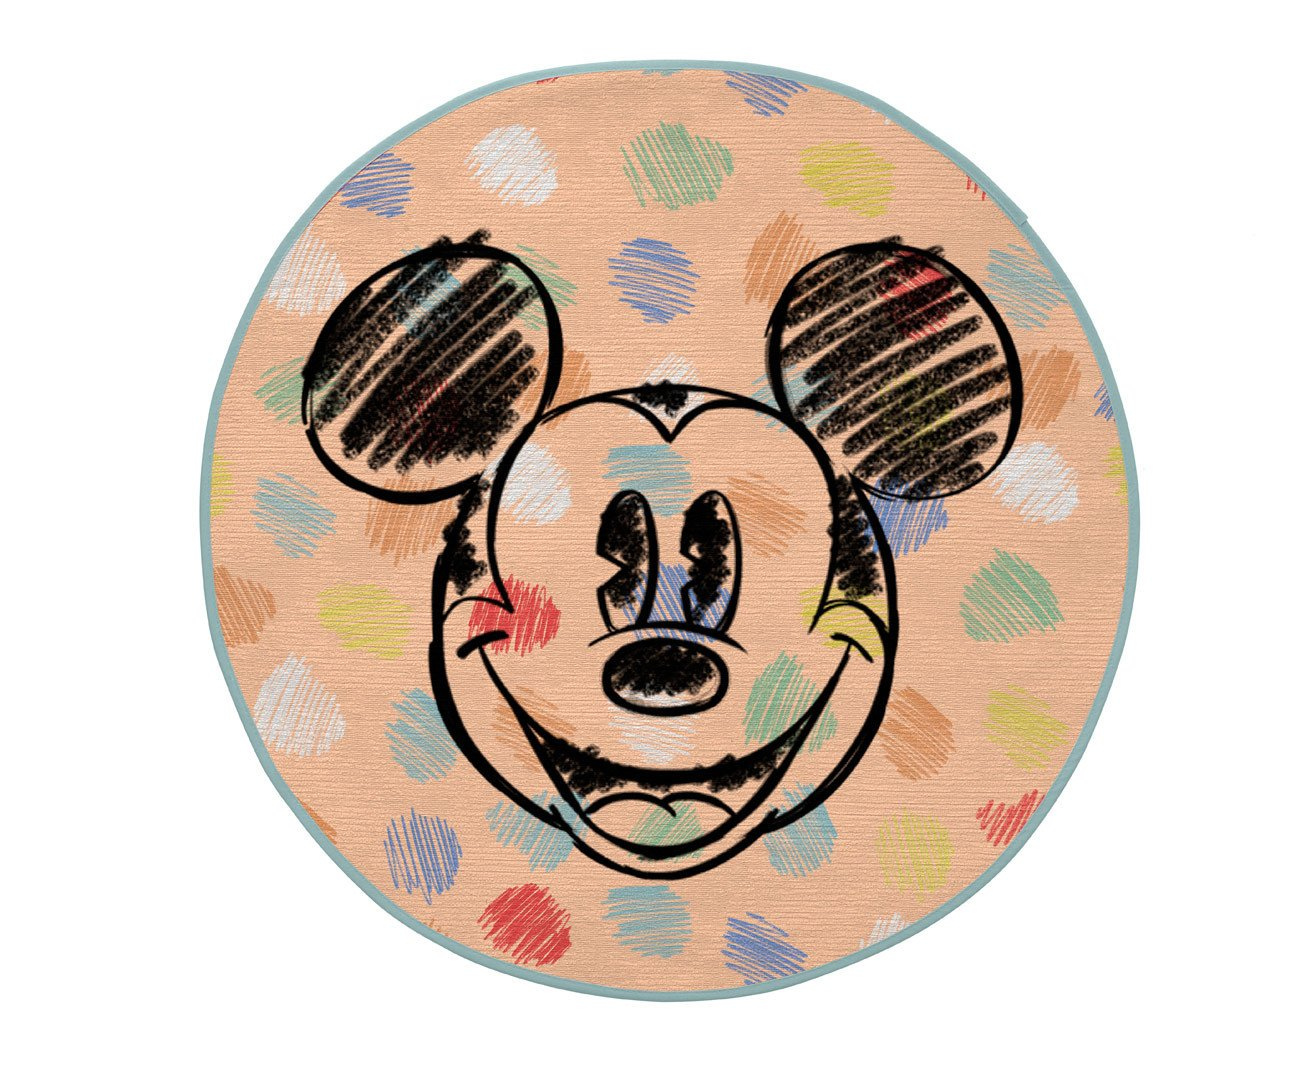 Tapis rond Disney lavable en machine multicolore Dots Mickey